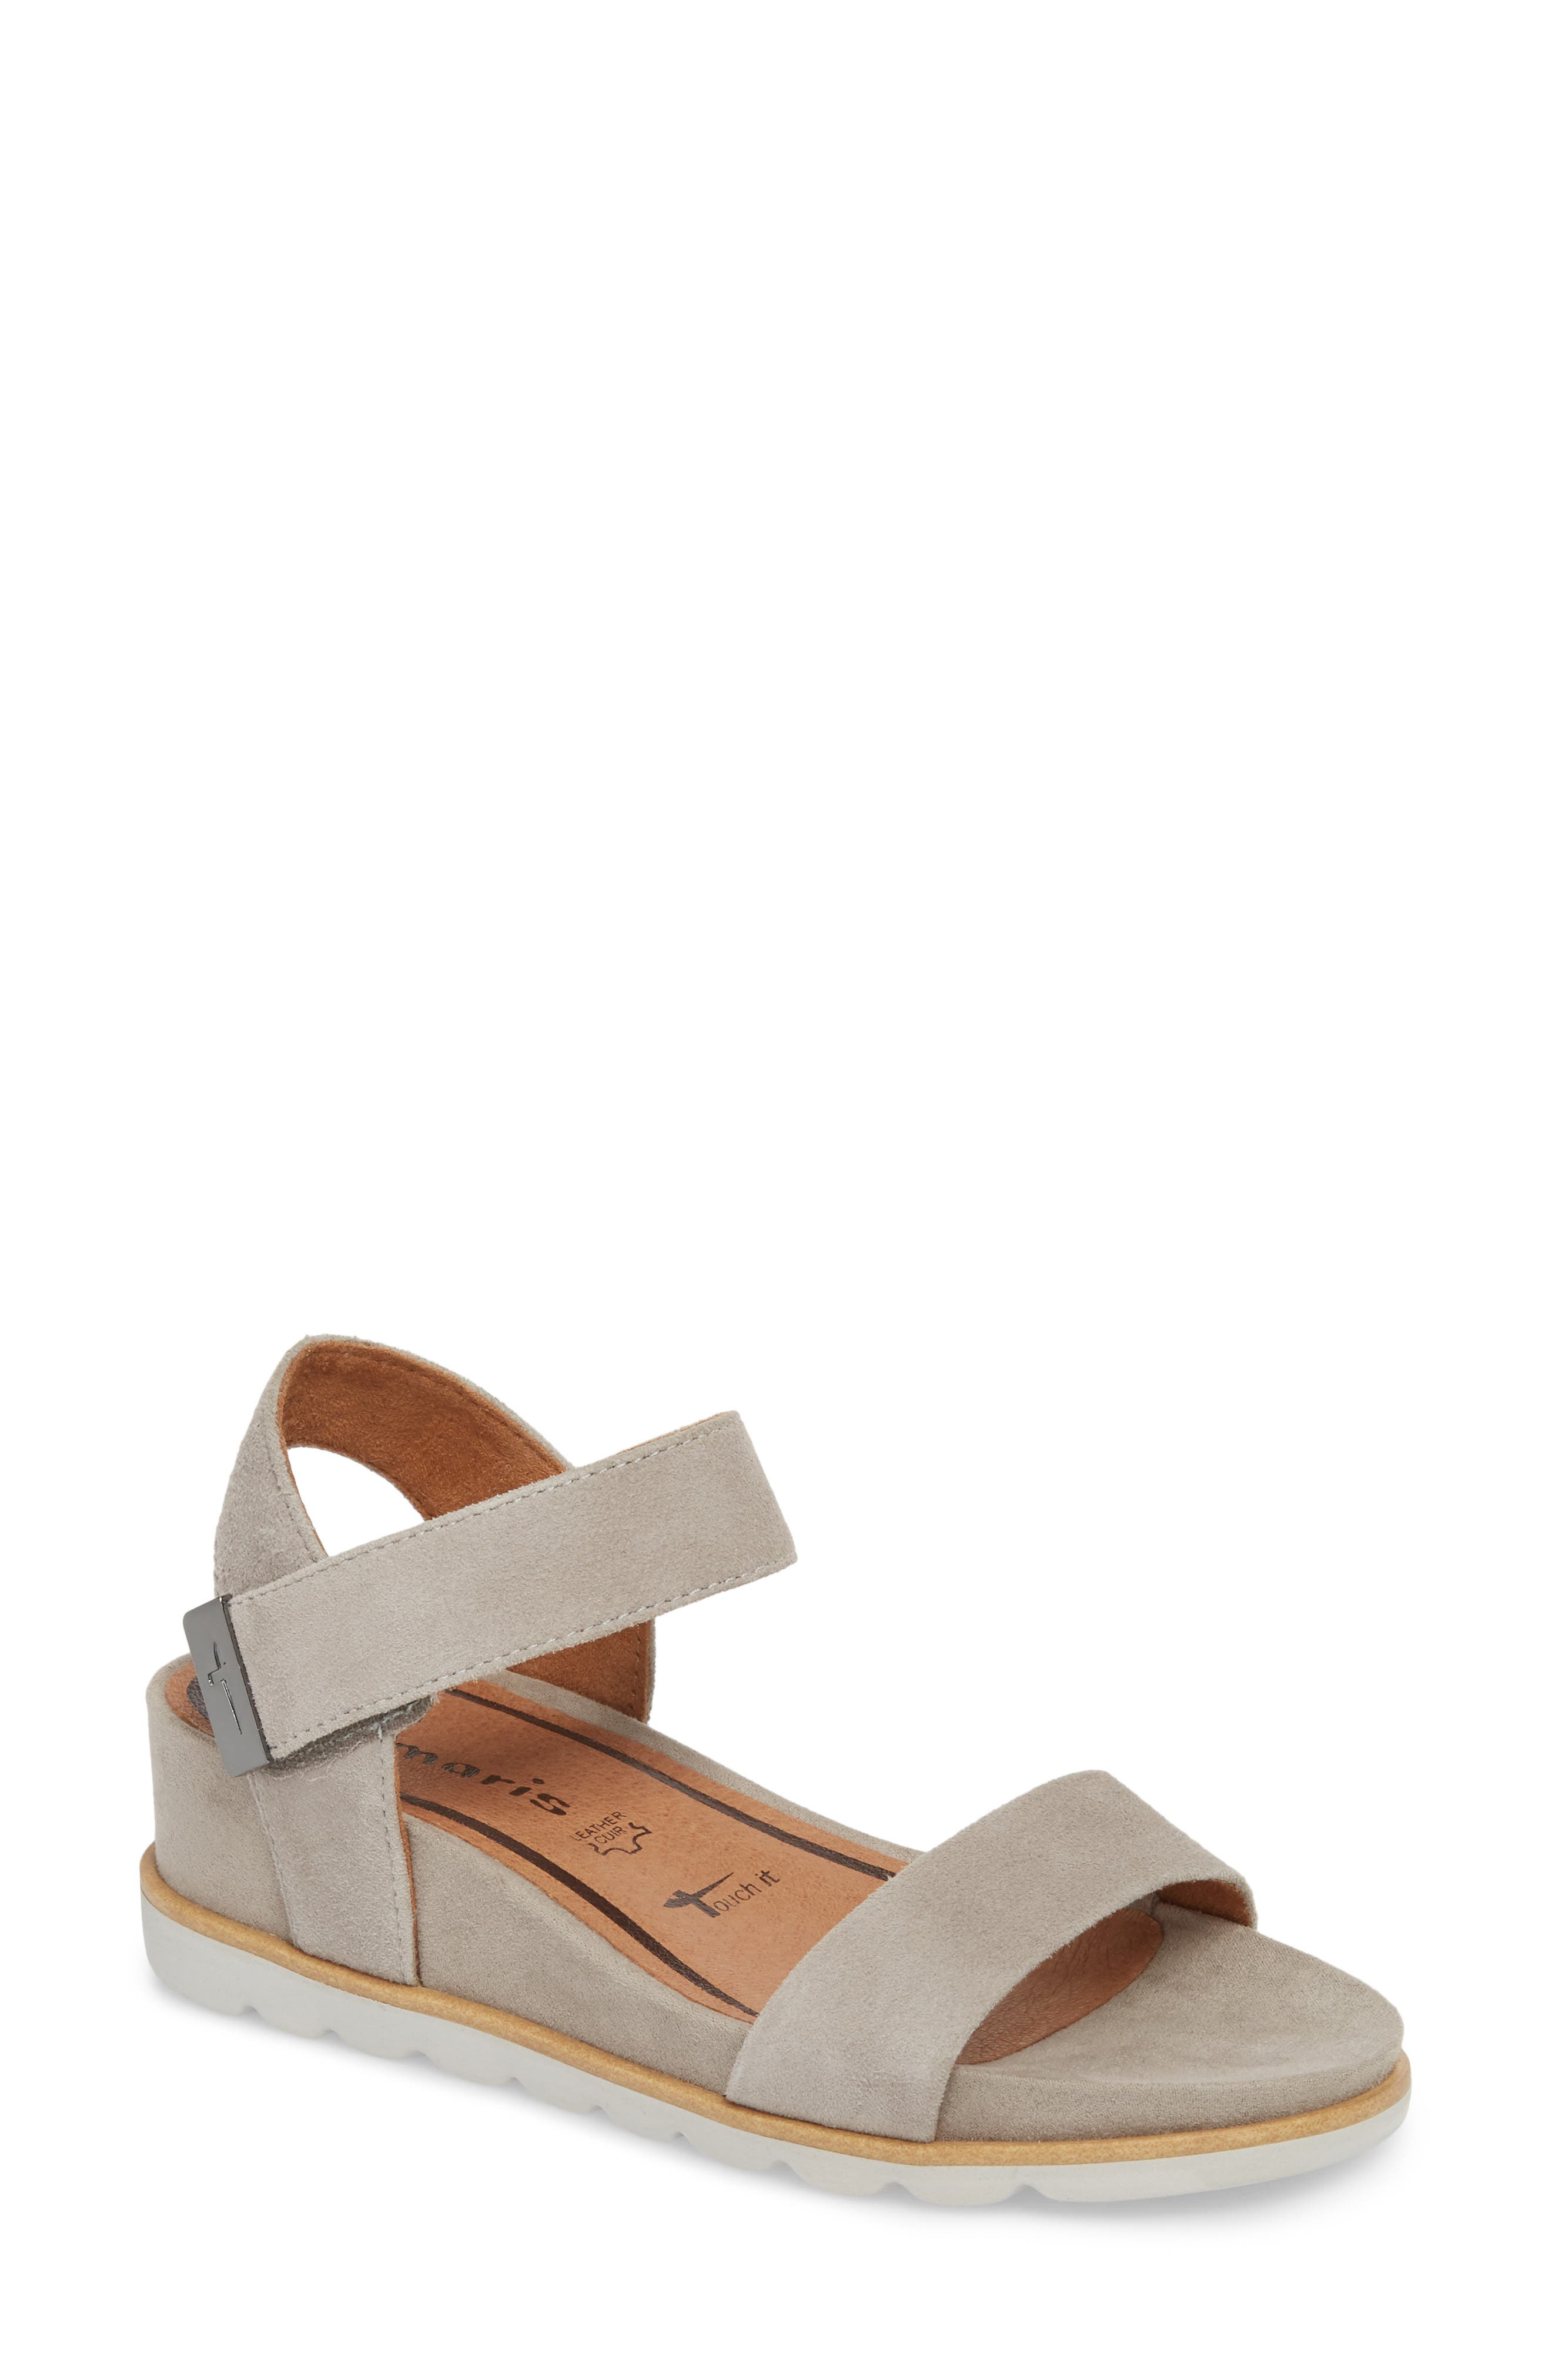 Cory Wedge Sandal,                             Main thumbnail 2, color,